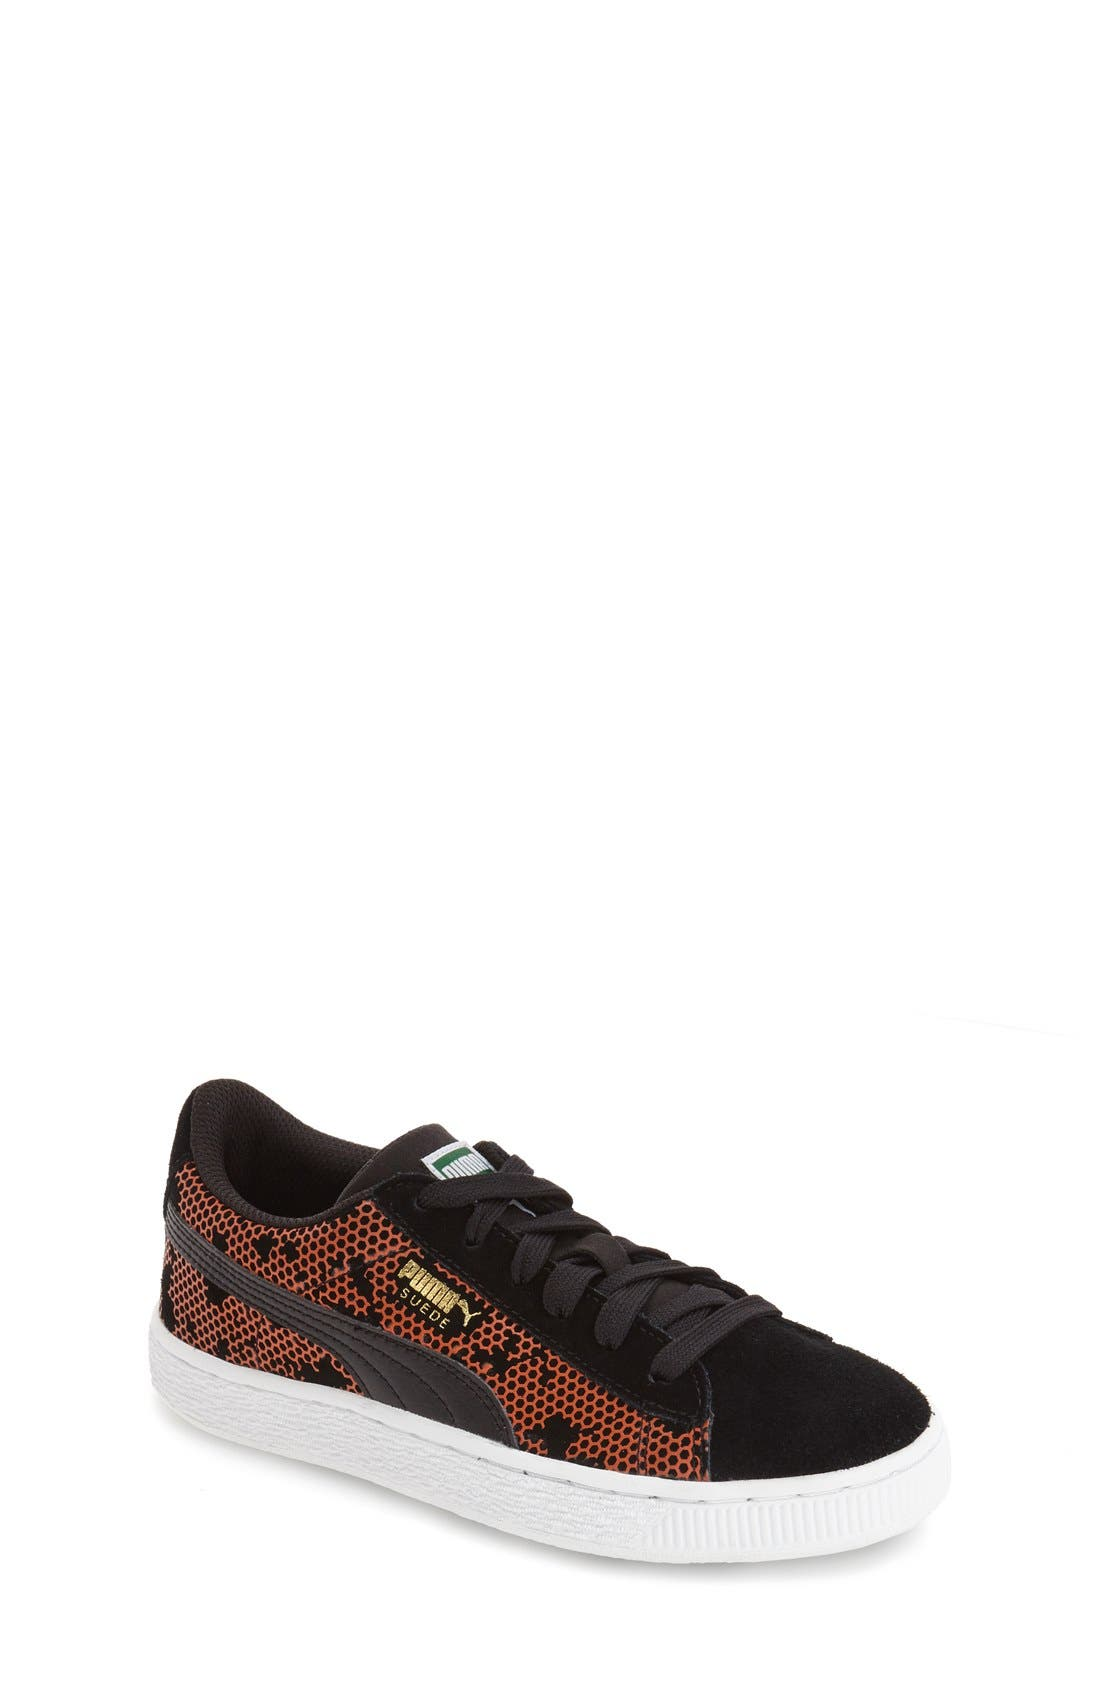 PUMA 'Night Camo' Sneaker